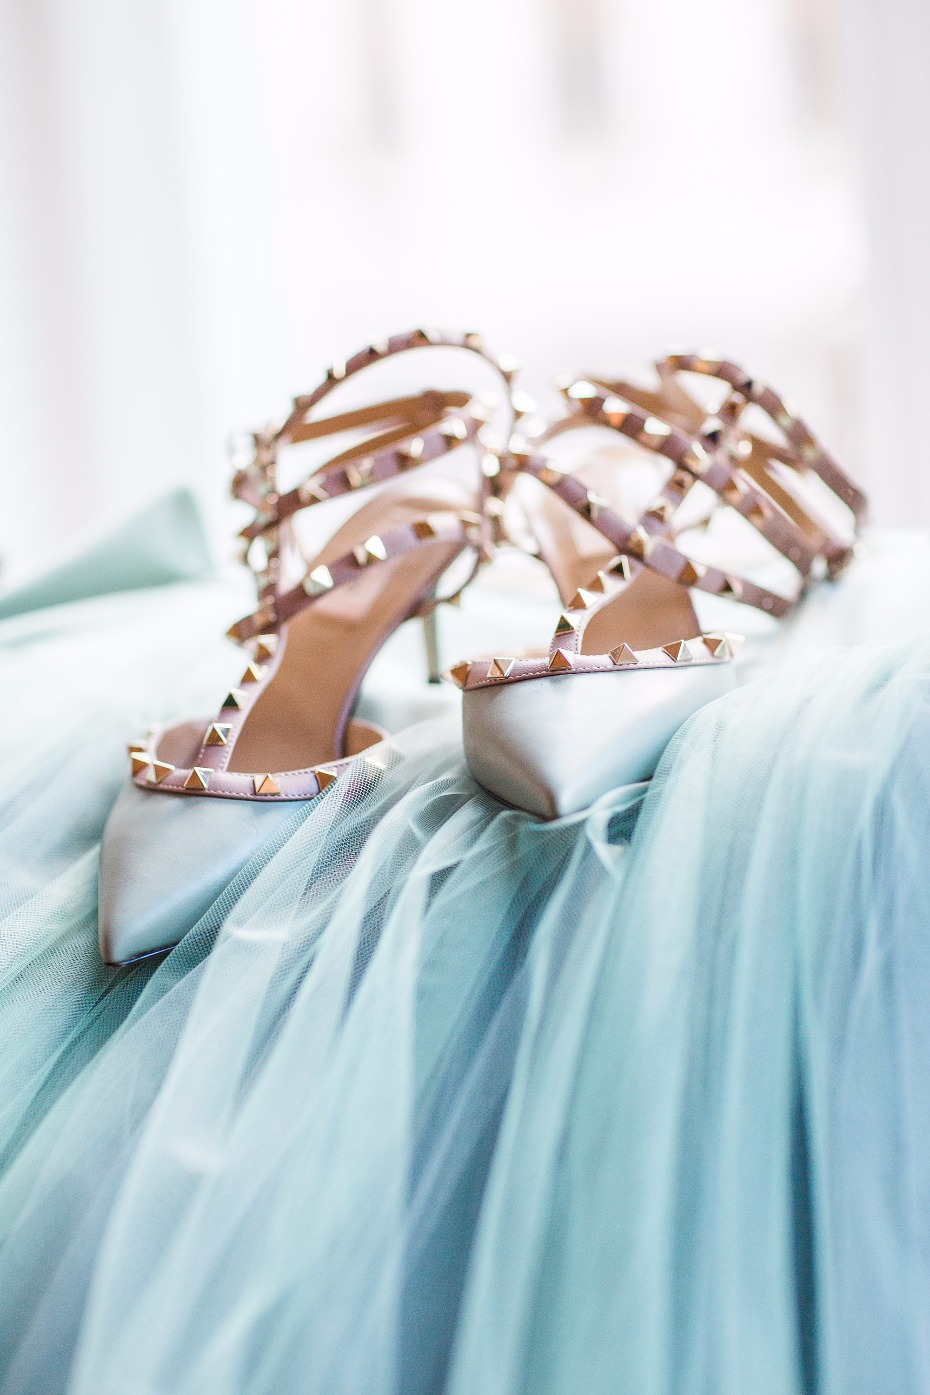 Rock studded heels and blue tulle for this winter bridal look